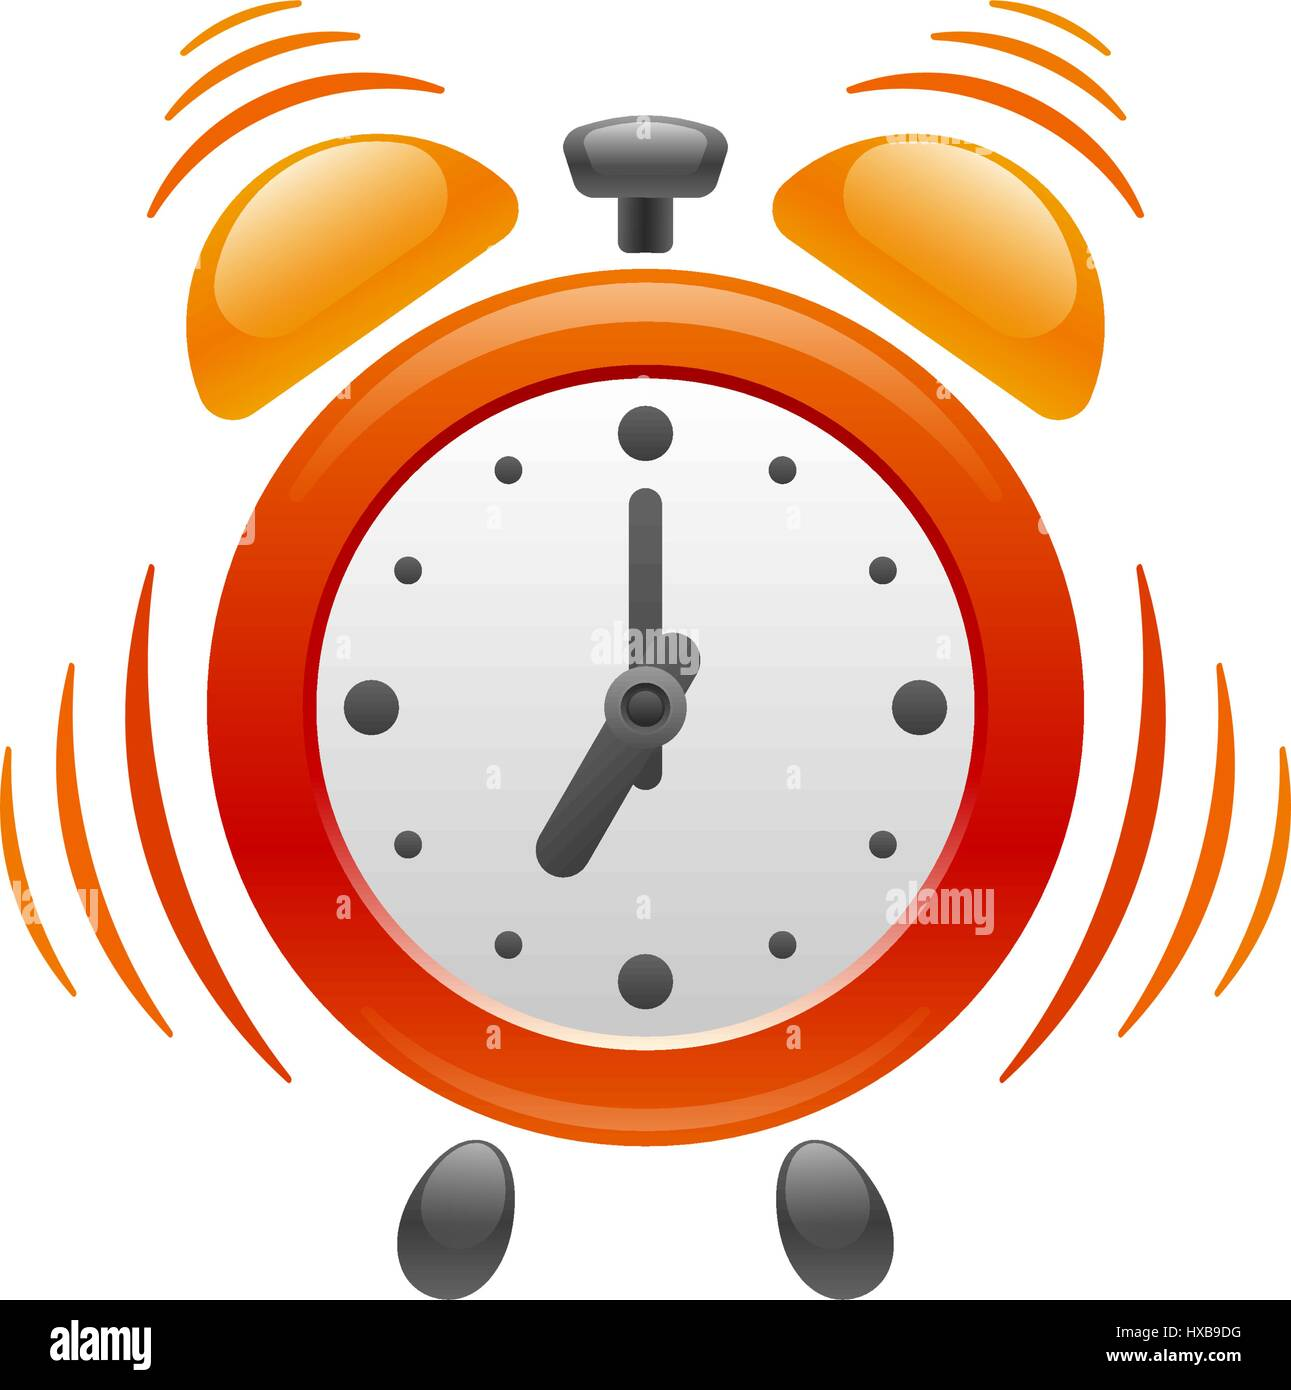 Design of alarm clock with vibration on white background. Its Stock ...